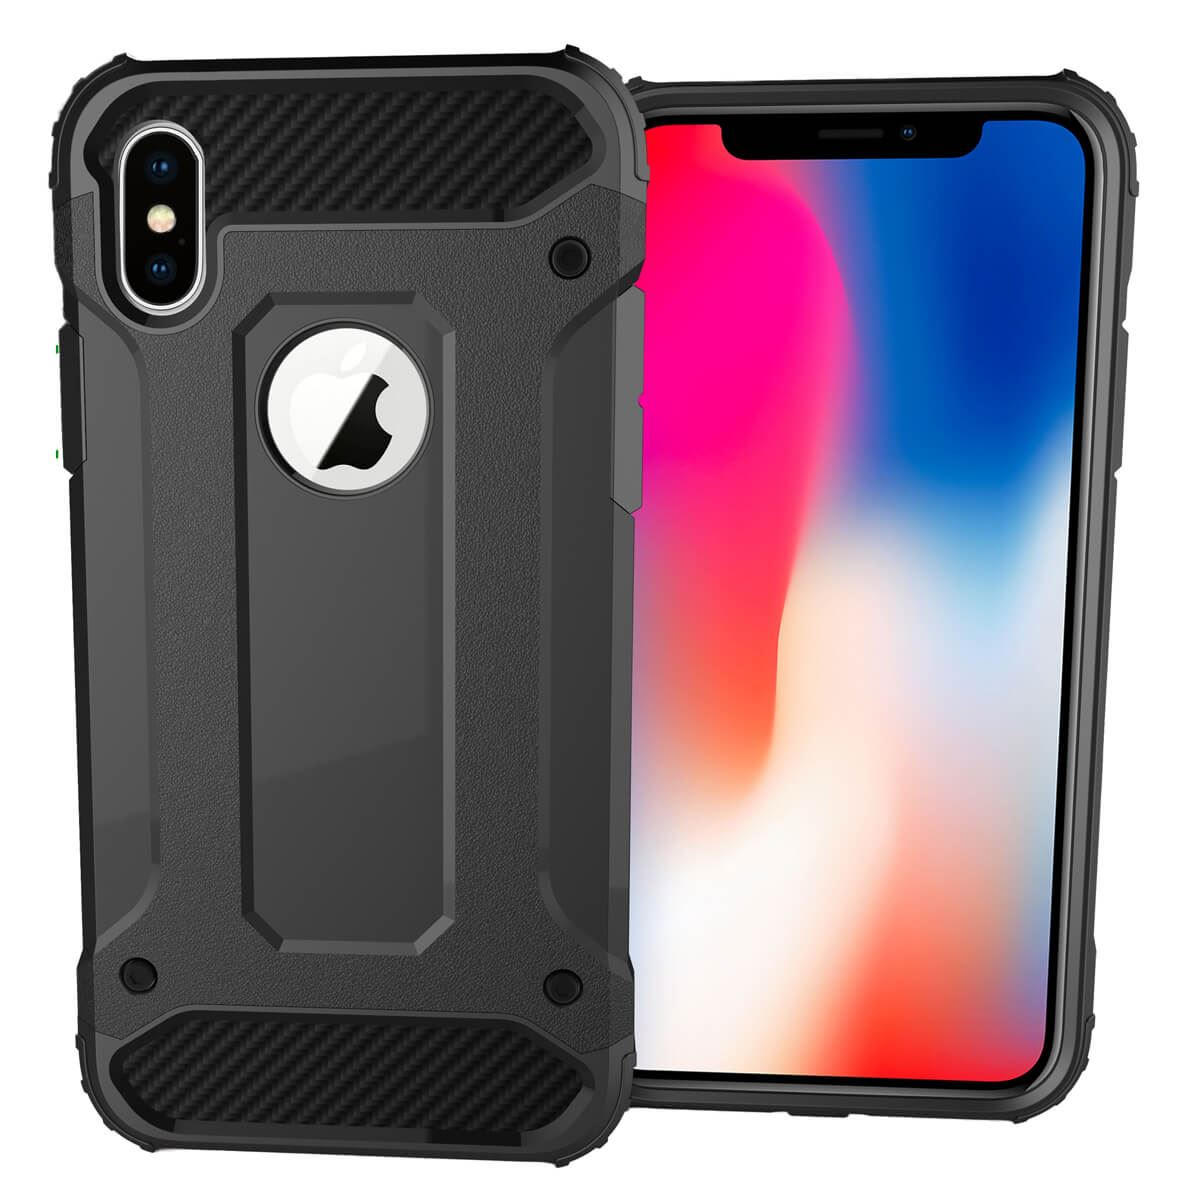 Shockproof-Bumper-Case-For-Apple-iPhone-10-X-8-7-Plus-6s-5s-Hybrid-Armor-Rugged thumbnail 3